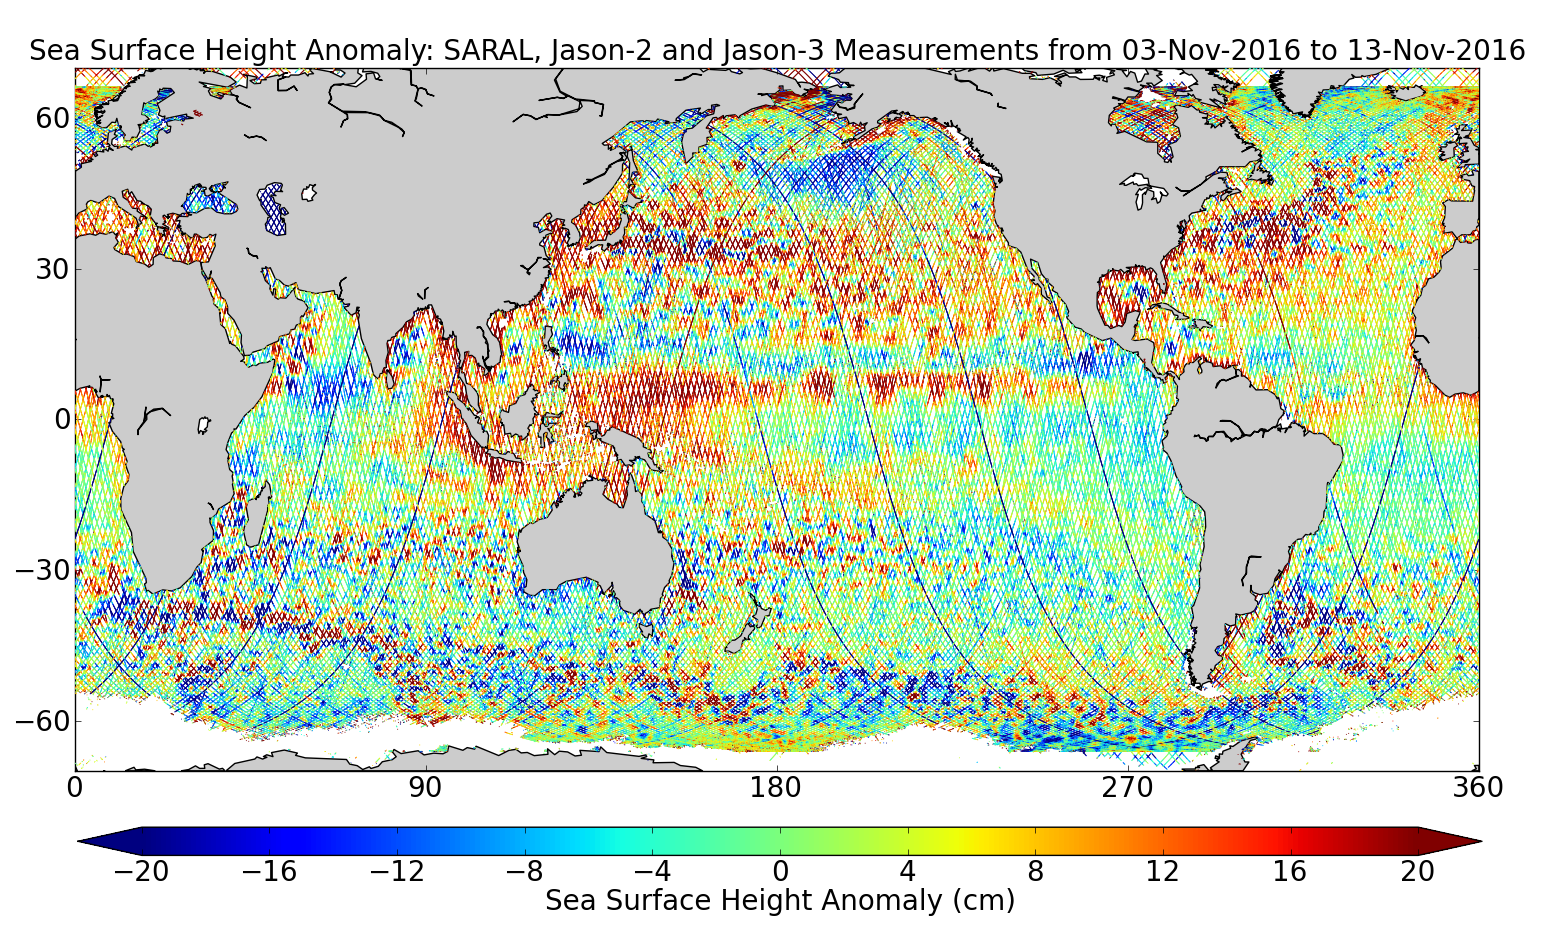 Sea Surface Height Anomaly: SARAL, Jason-2 and Jason-3 Measurements from 03-Nov-2016 to 13-Nov-2016